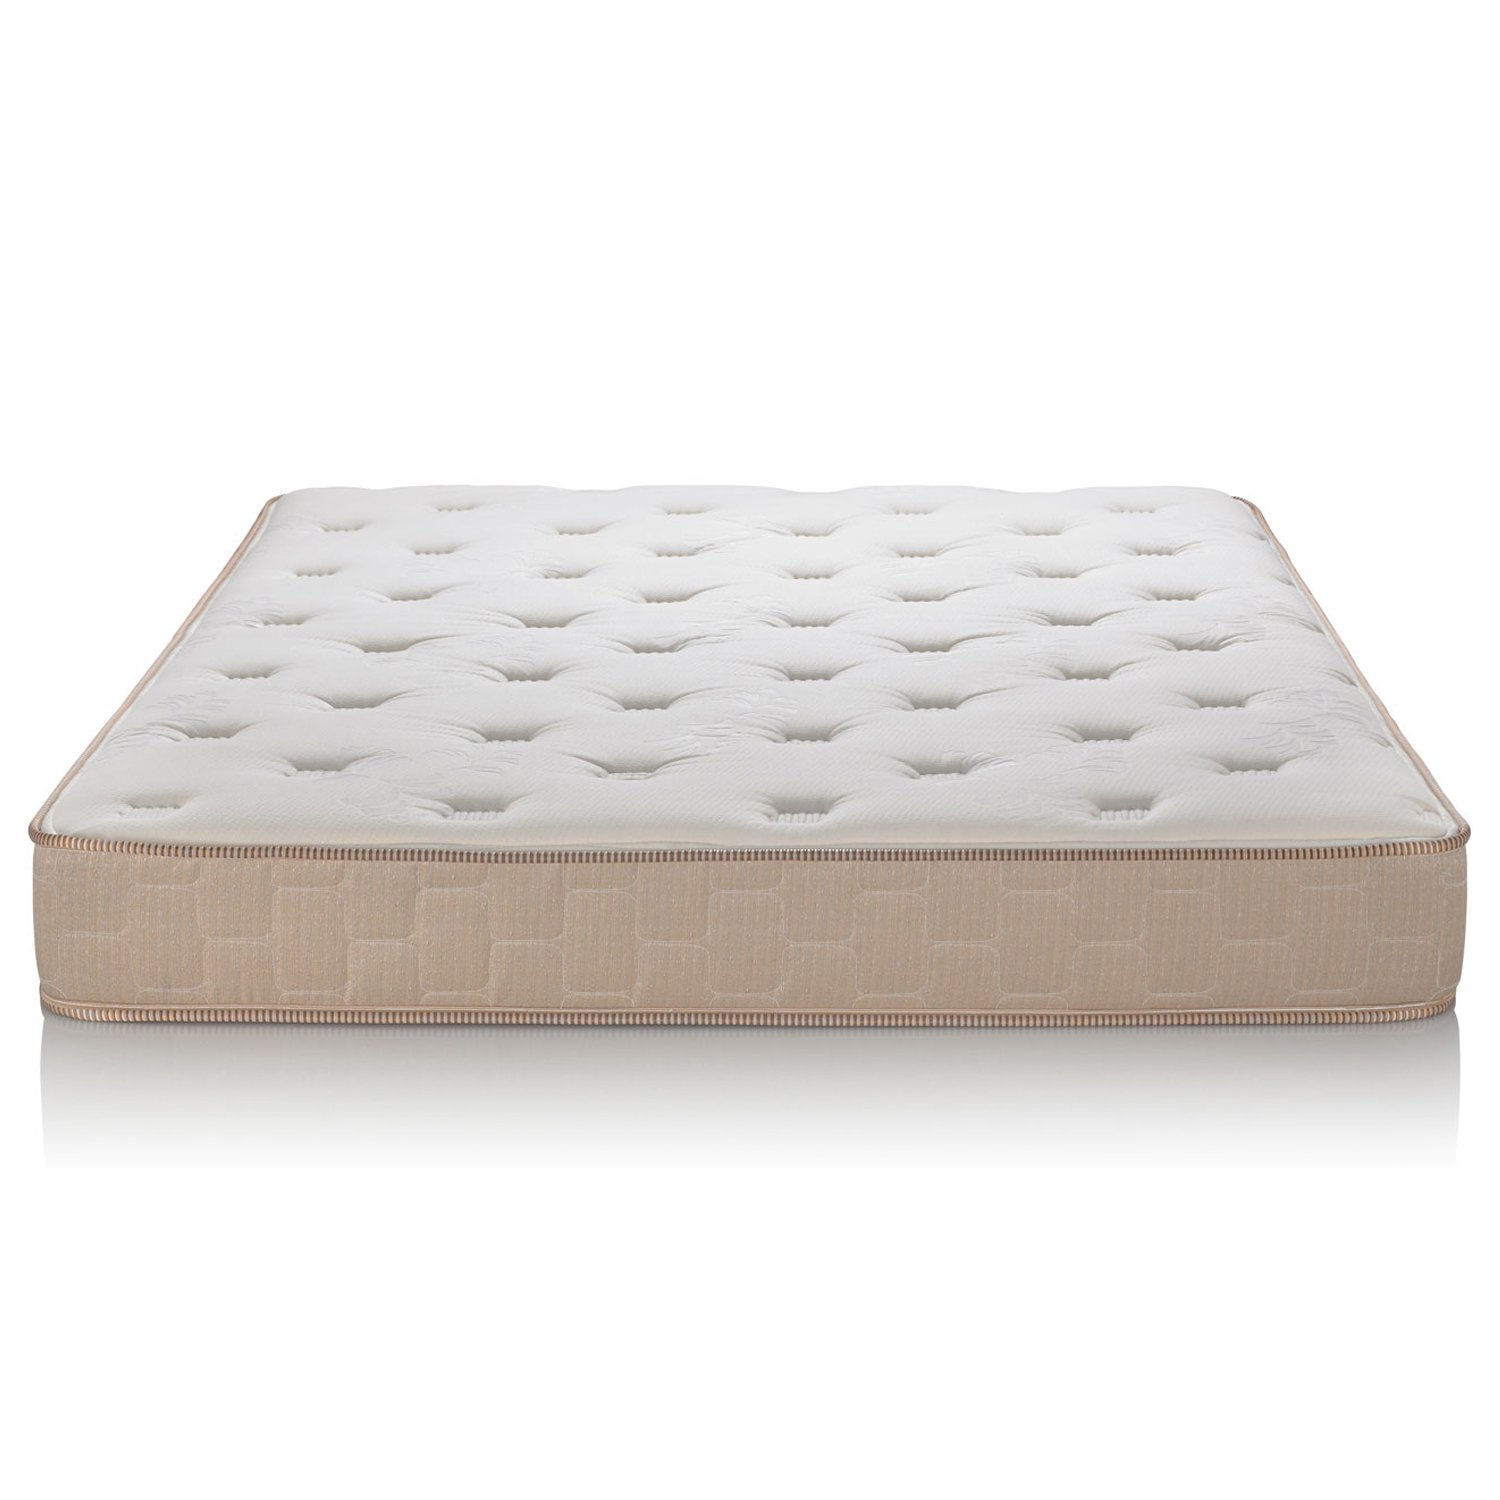 Englander Finale 10-Inch Innerspring Mattress - Enjoy a Super Soft & Comfy Sleep - Ideal for Kids & Guest Beds - The Best Cheap Mattress for a Peaceful Night's Sleep - Beige - Twin - Made in USA